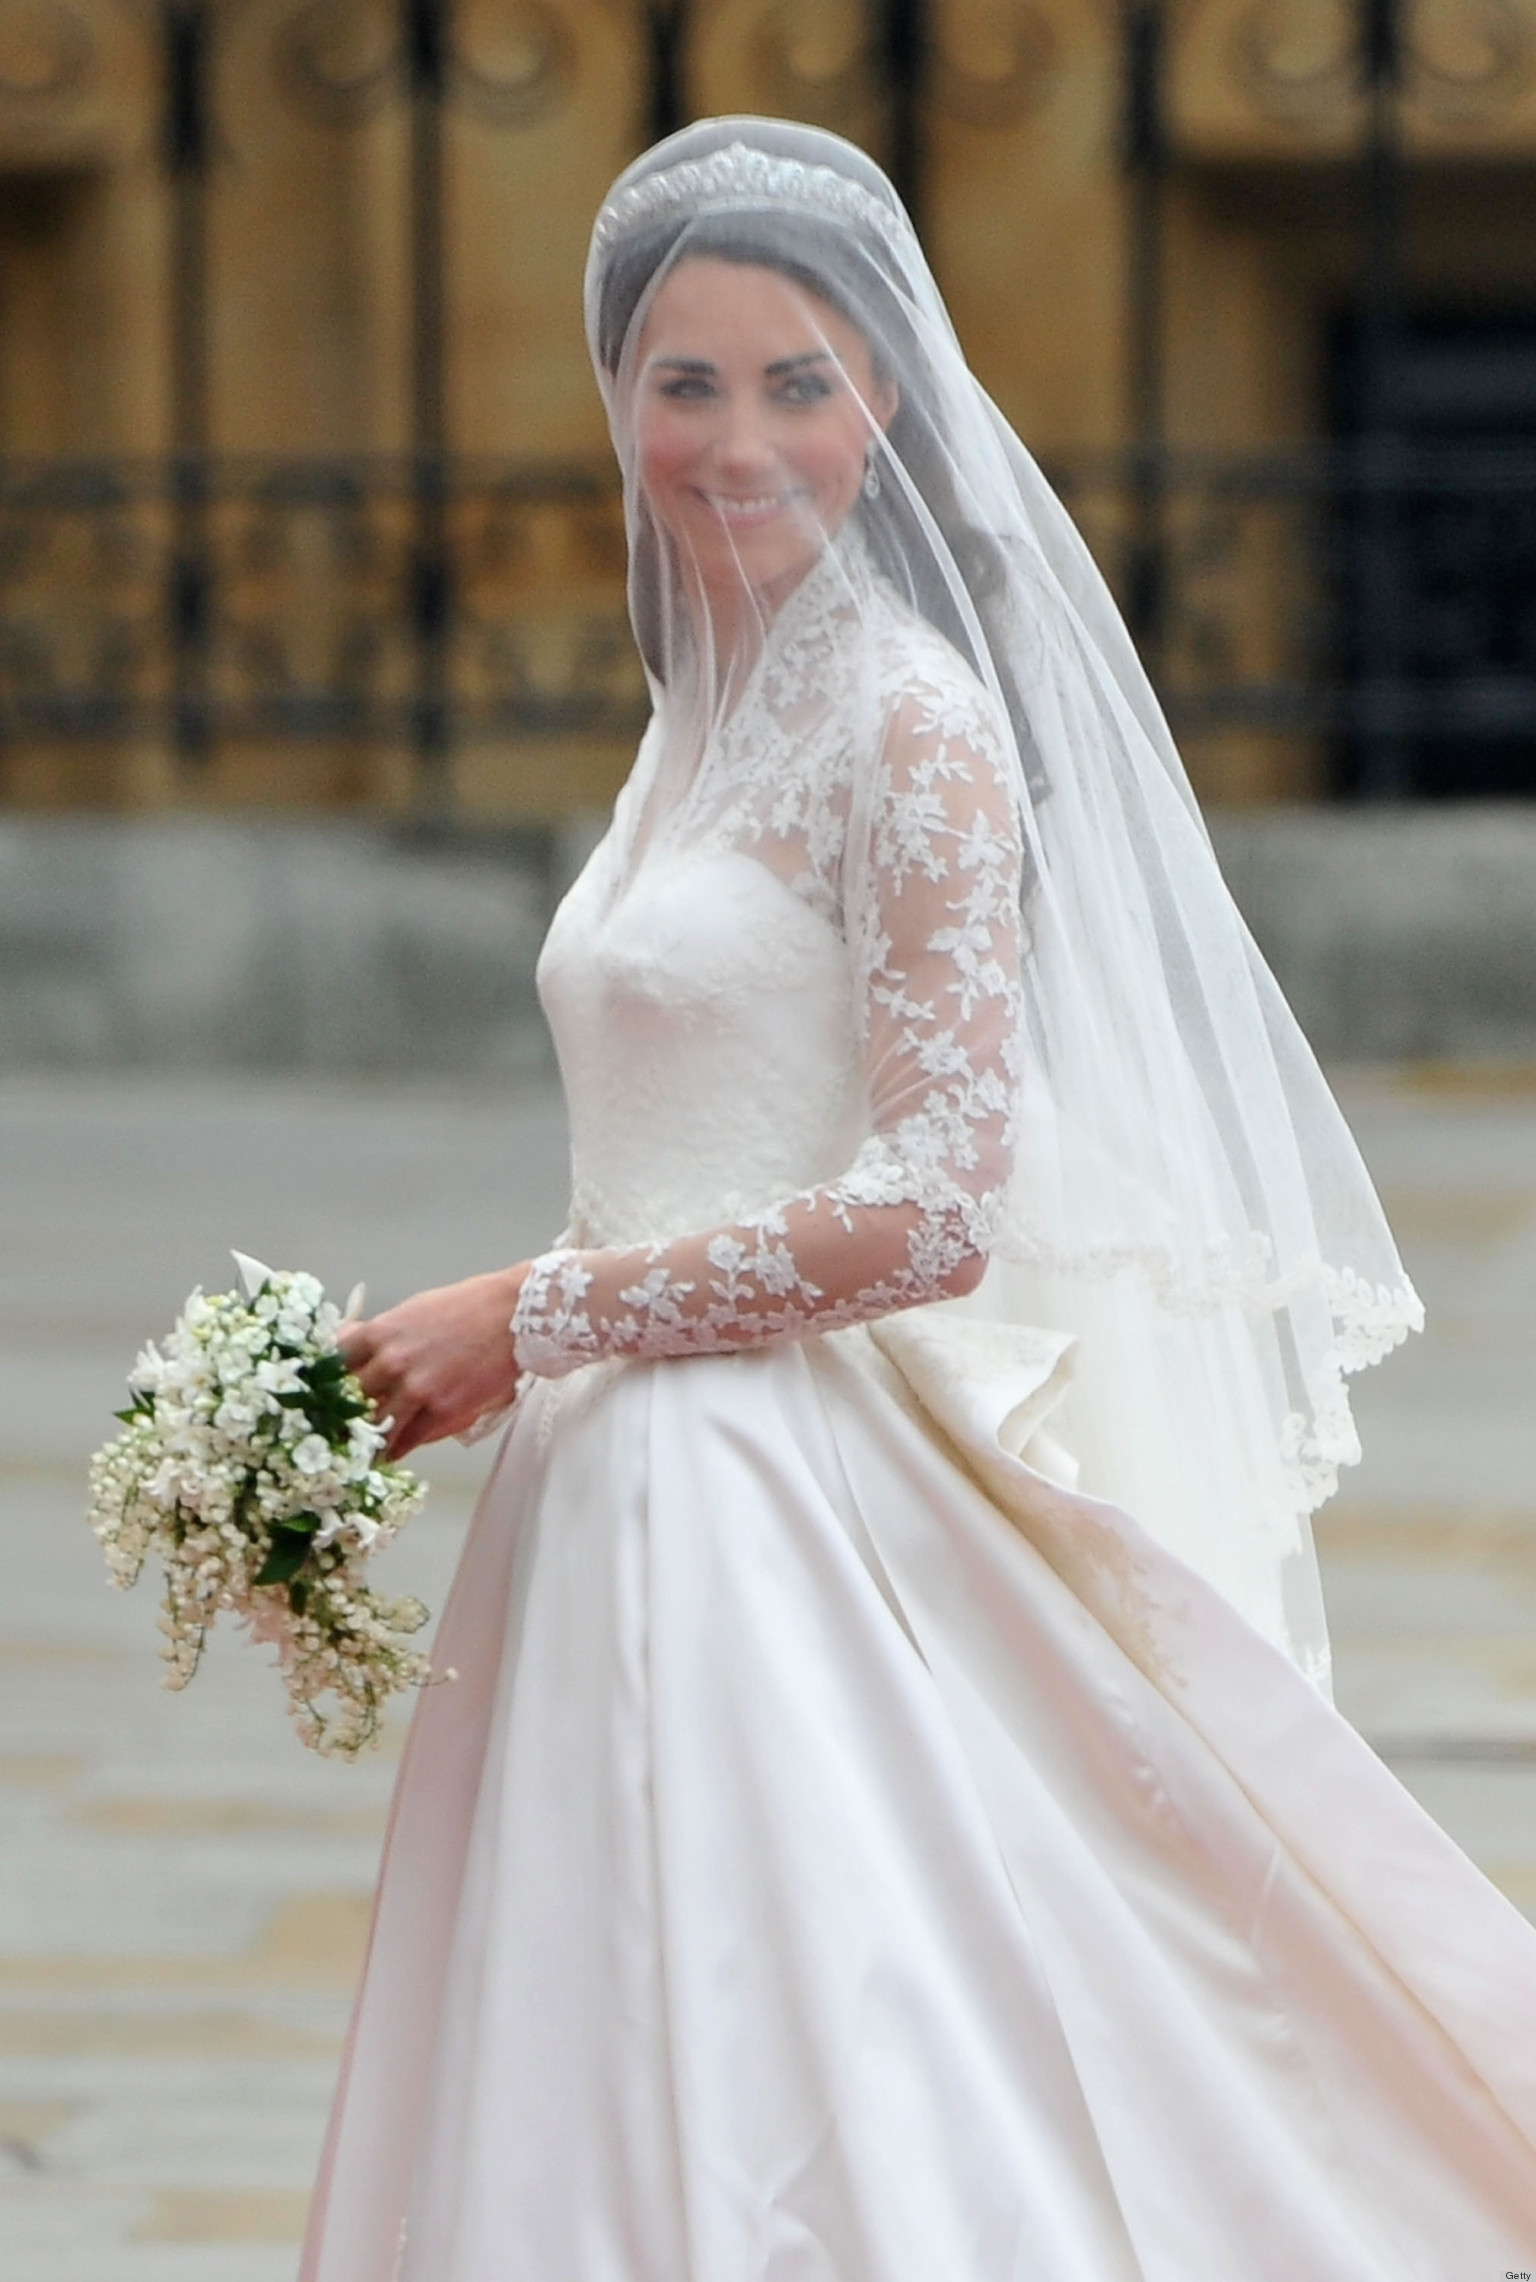 Kate Middleton Wedding Dress Causes Wikipedia Controversy